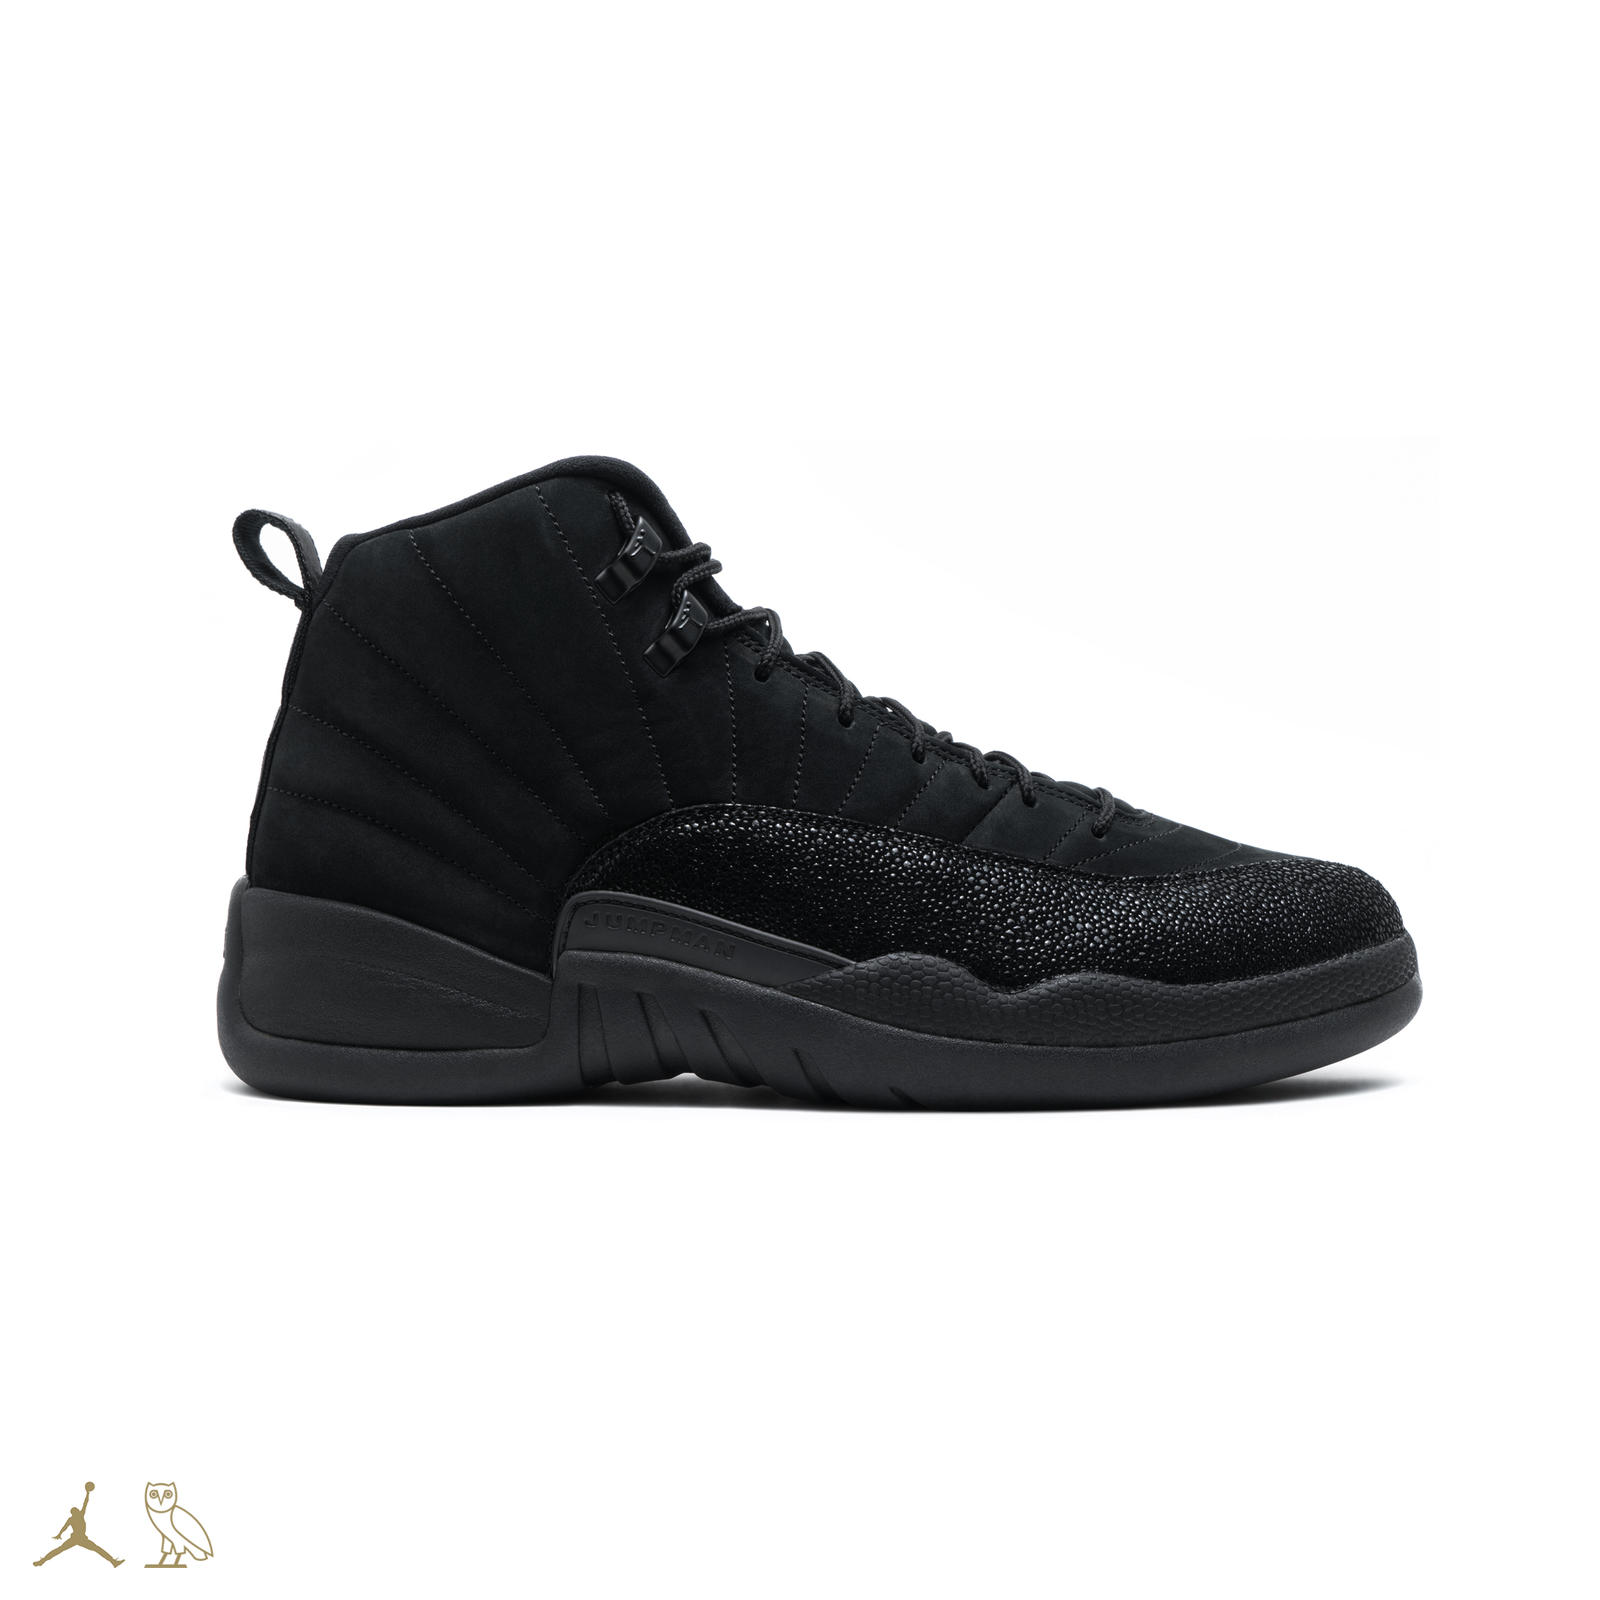 Black ovo jordan 12s 01 square 1600